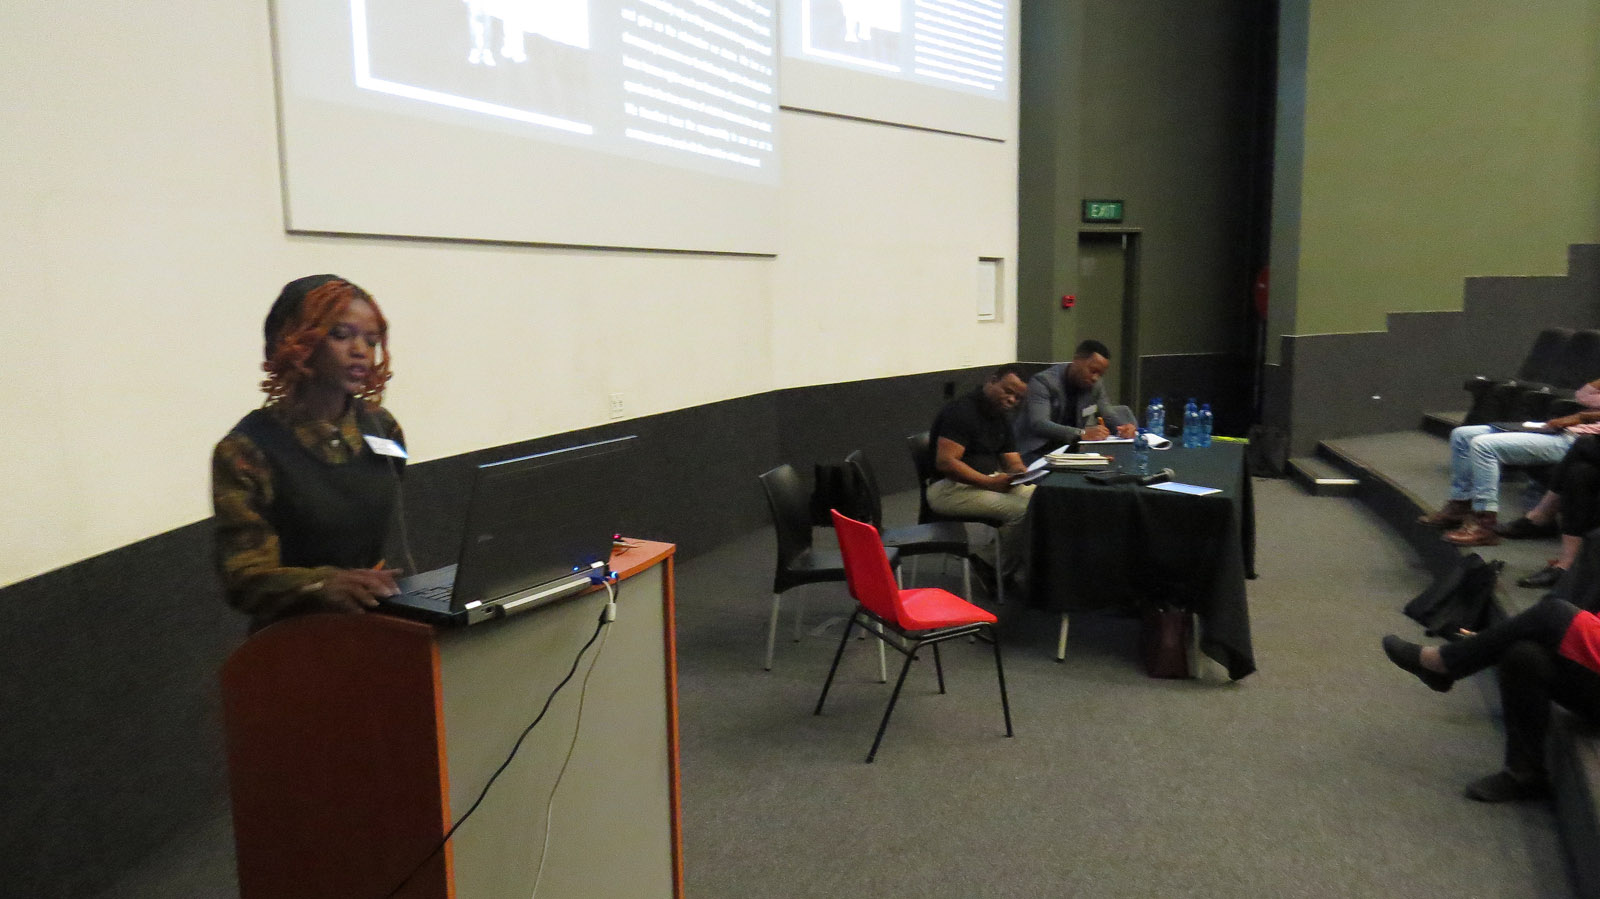 Click the image for a view of: Nonkululeko Chabalala speaking at the roundtable: South African book arts as a democratic force. Sunday 26 March